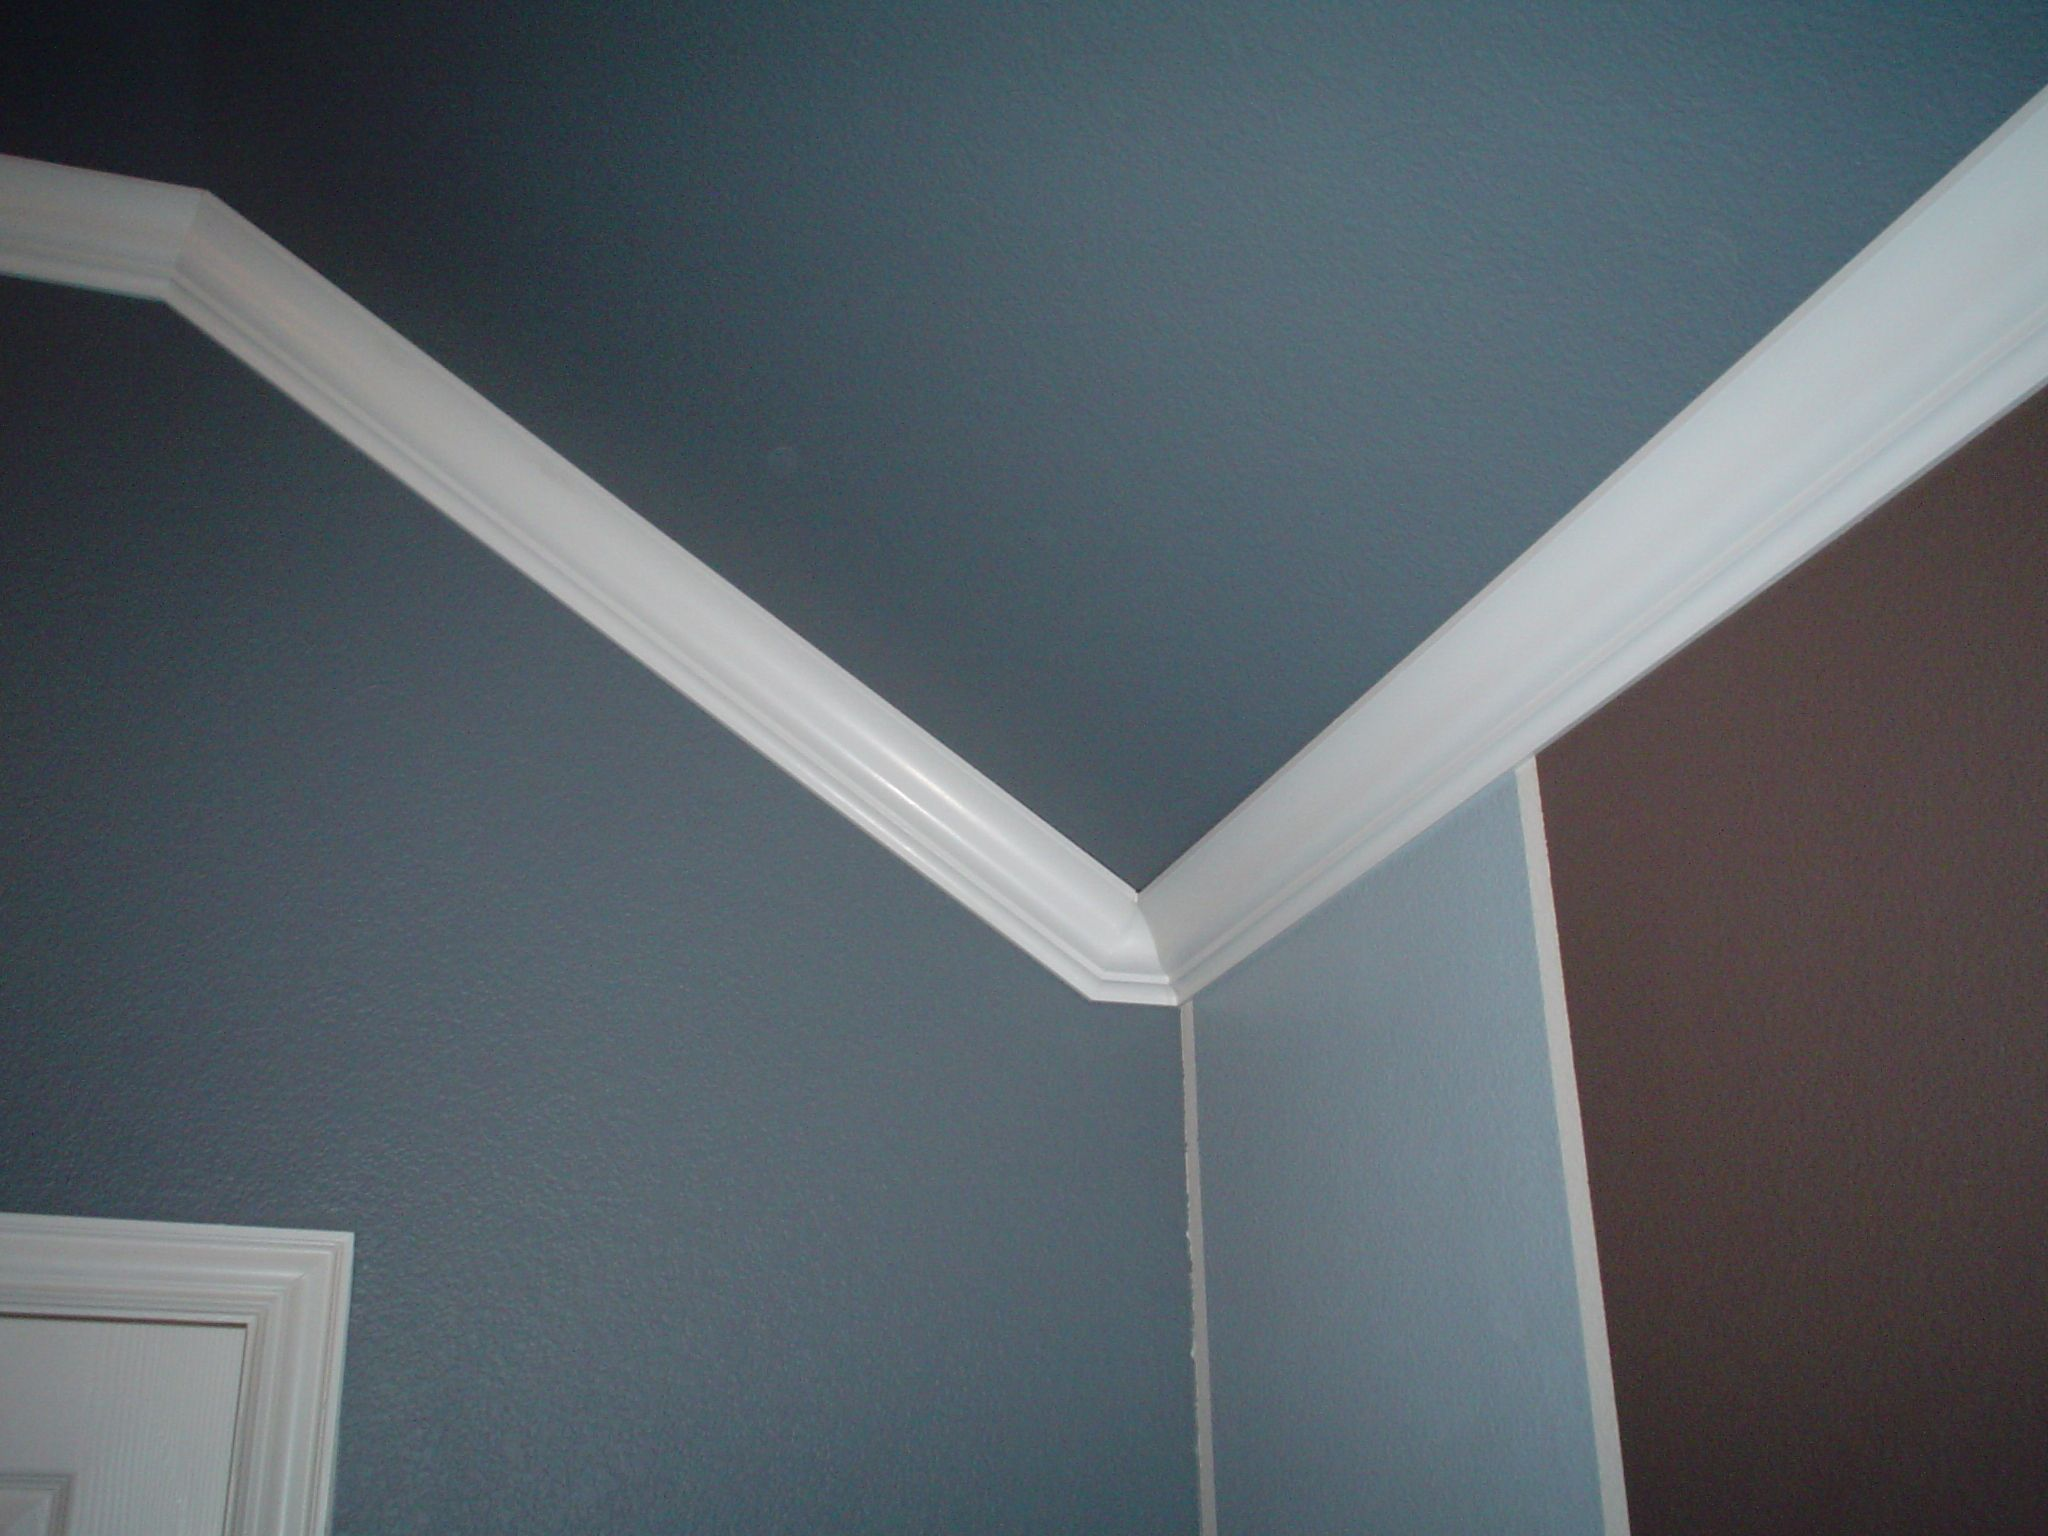 angled ceiling crown molding in corner example | Next project ...